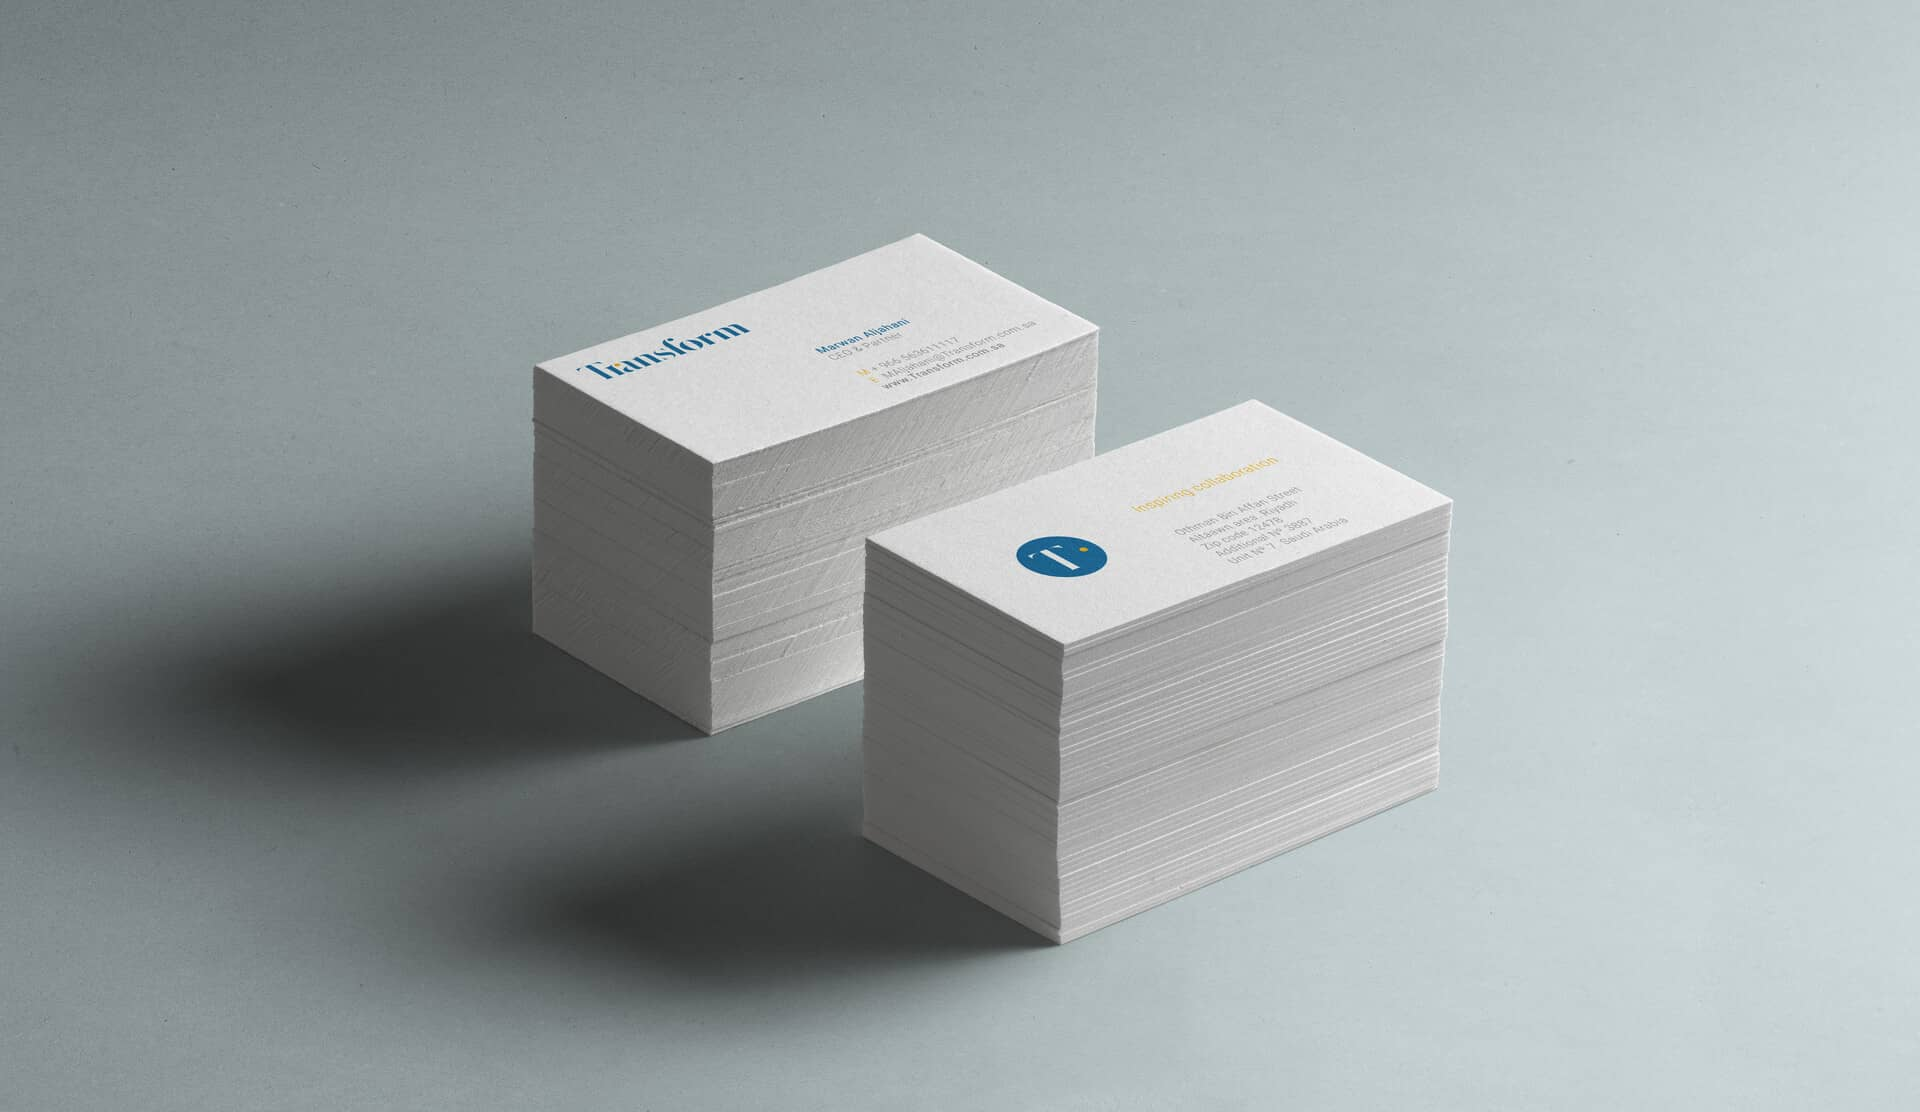 Two piles showing the two sides of Transform's business cards